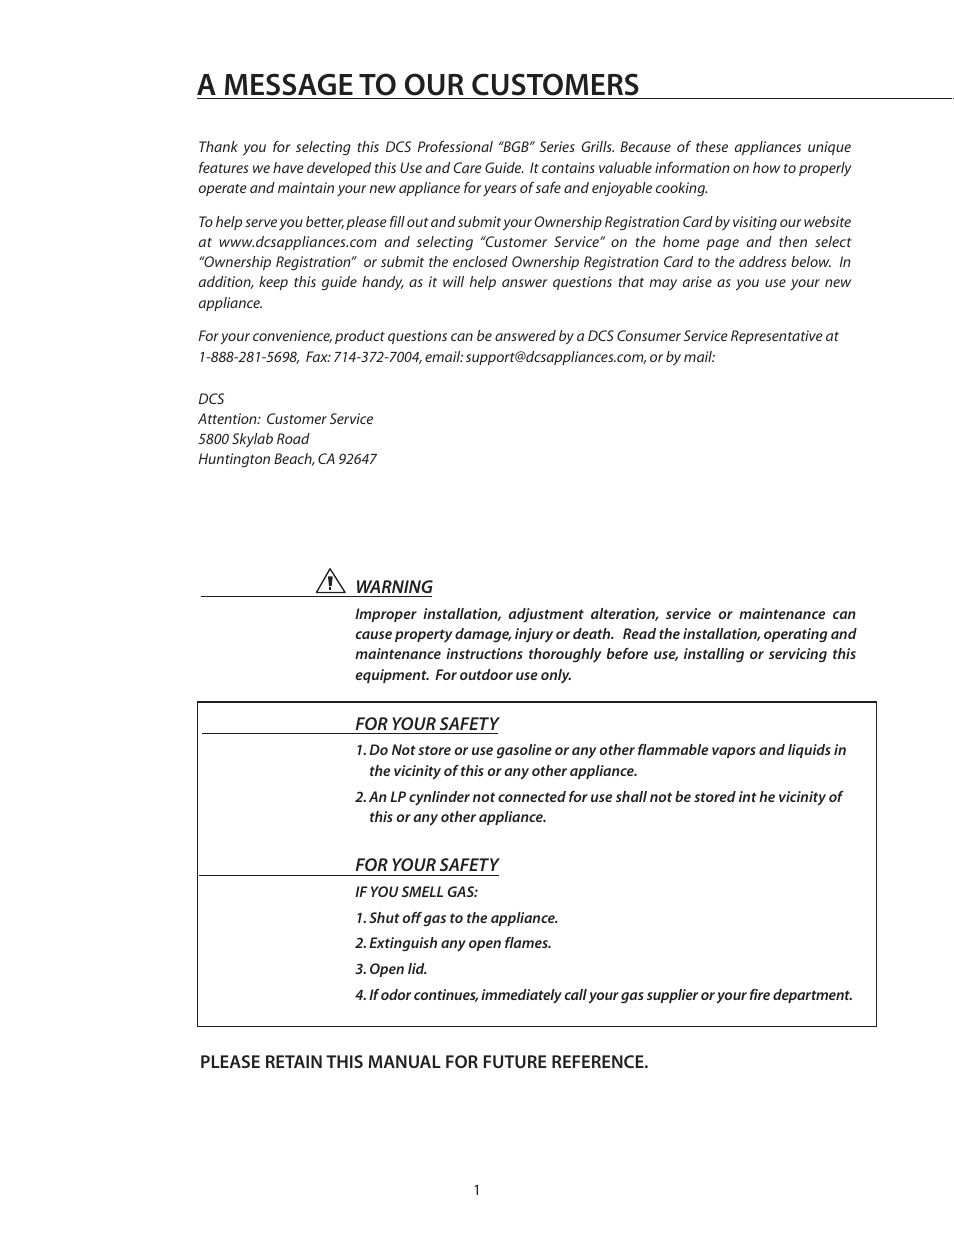 A message to our customers | DCS BGB30-BQR User Manual | Page 2 /